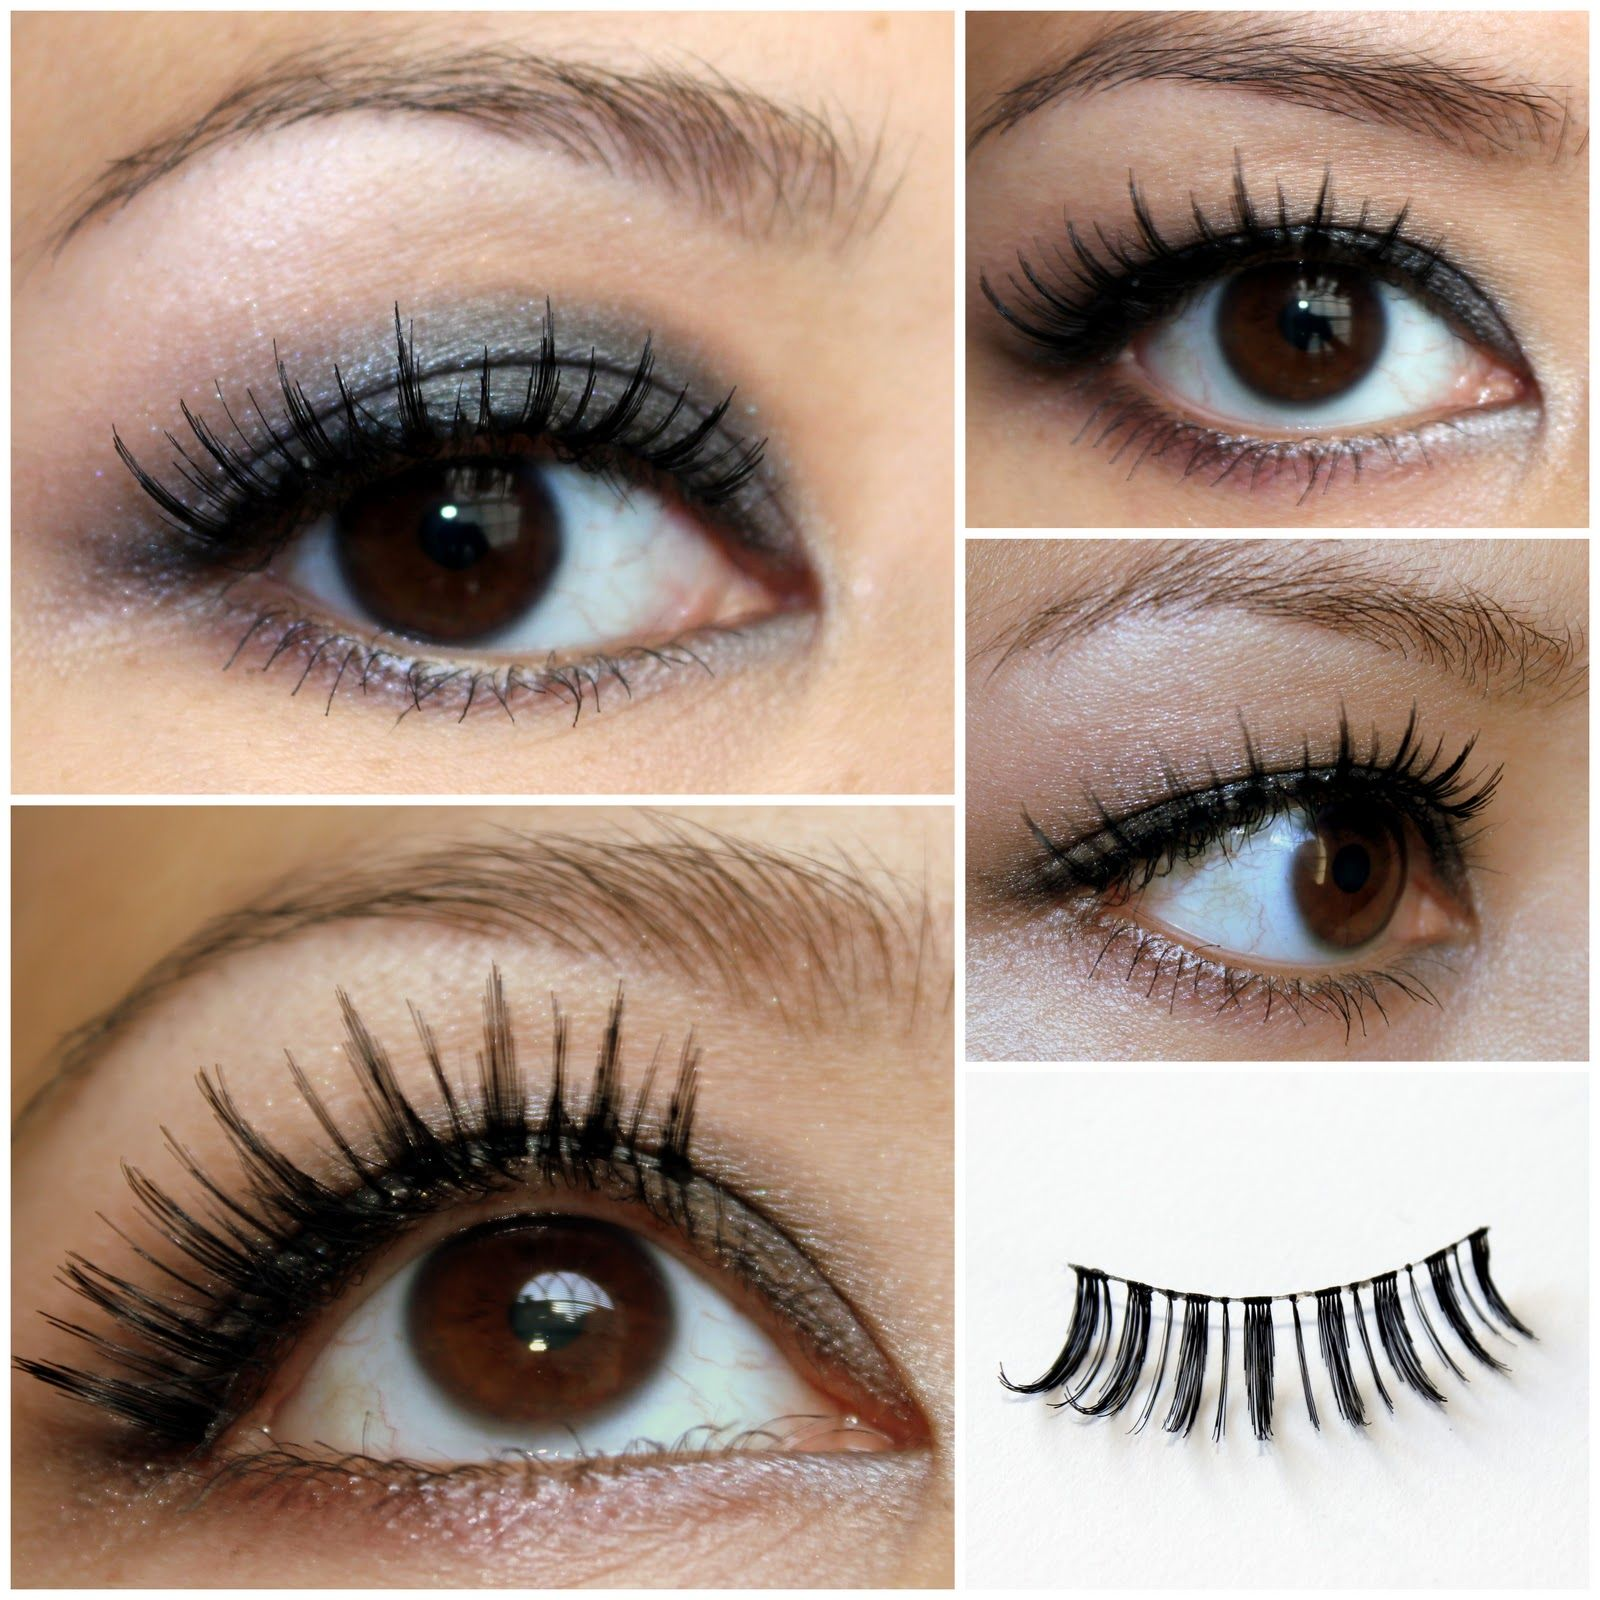 fb1aae713fc Ardell Lashes - Love the Demi Pixies lashes! | Makeup | Lashes ...